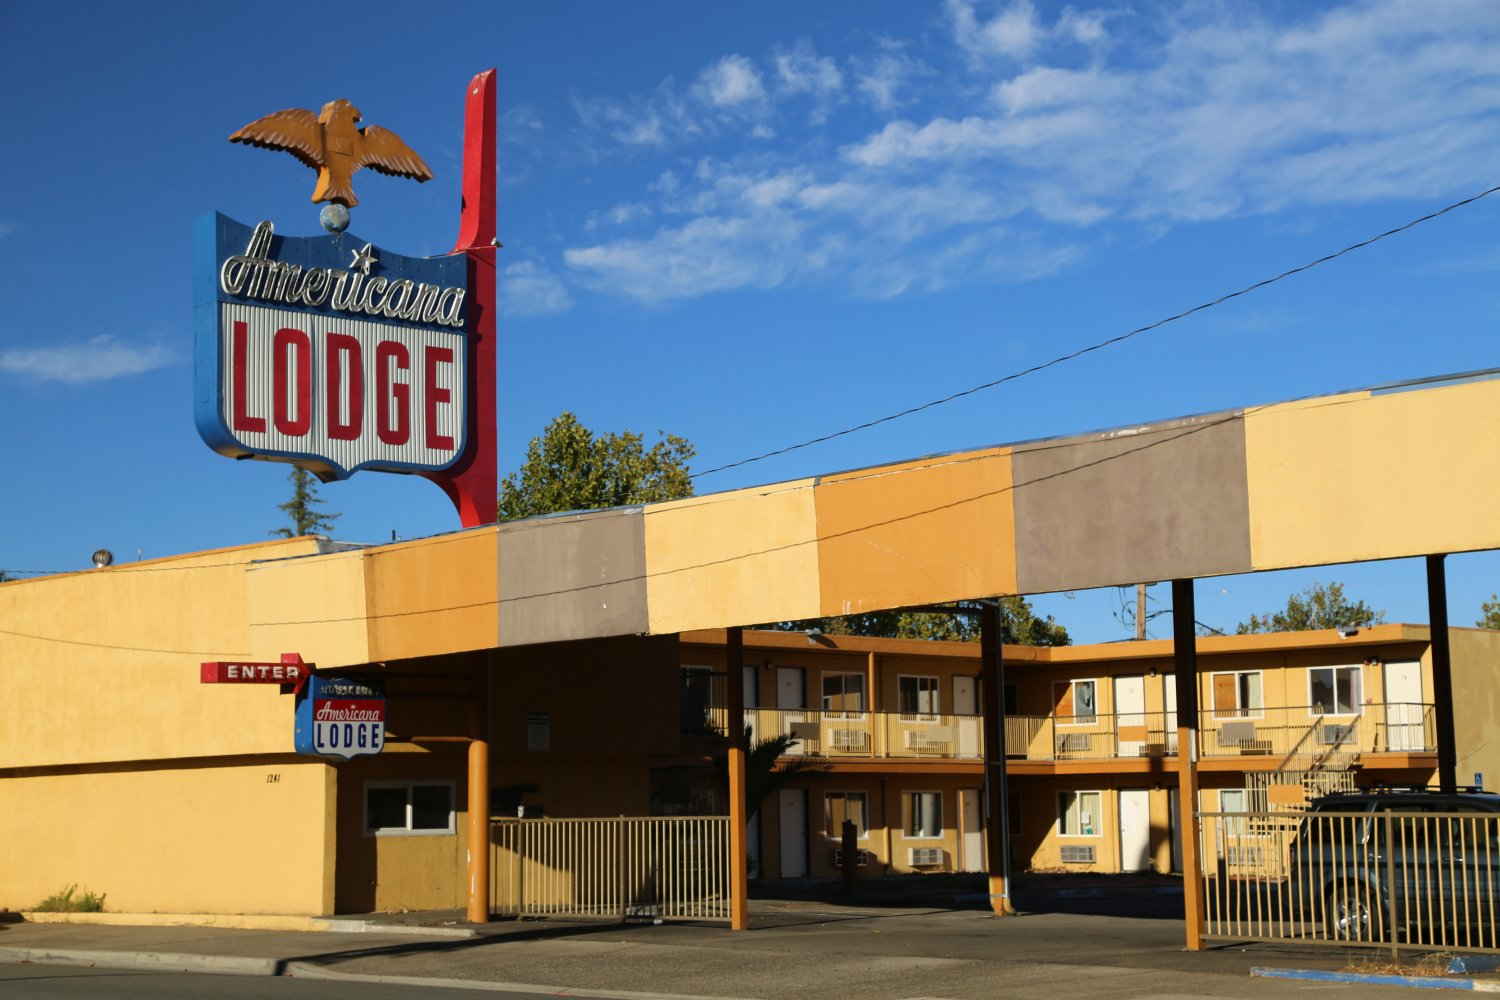 Americana Lodge Is One Of The Most Budget And Dated Older Hotels In Downtown Redding